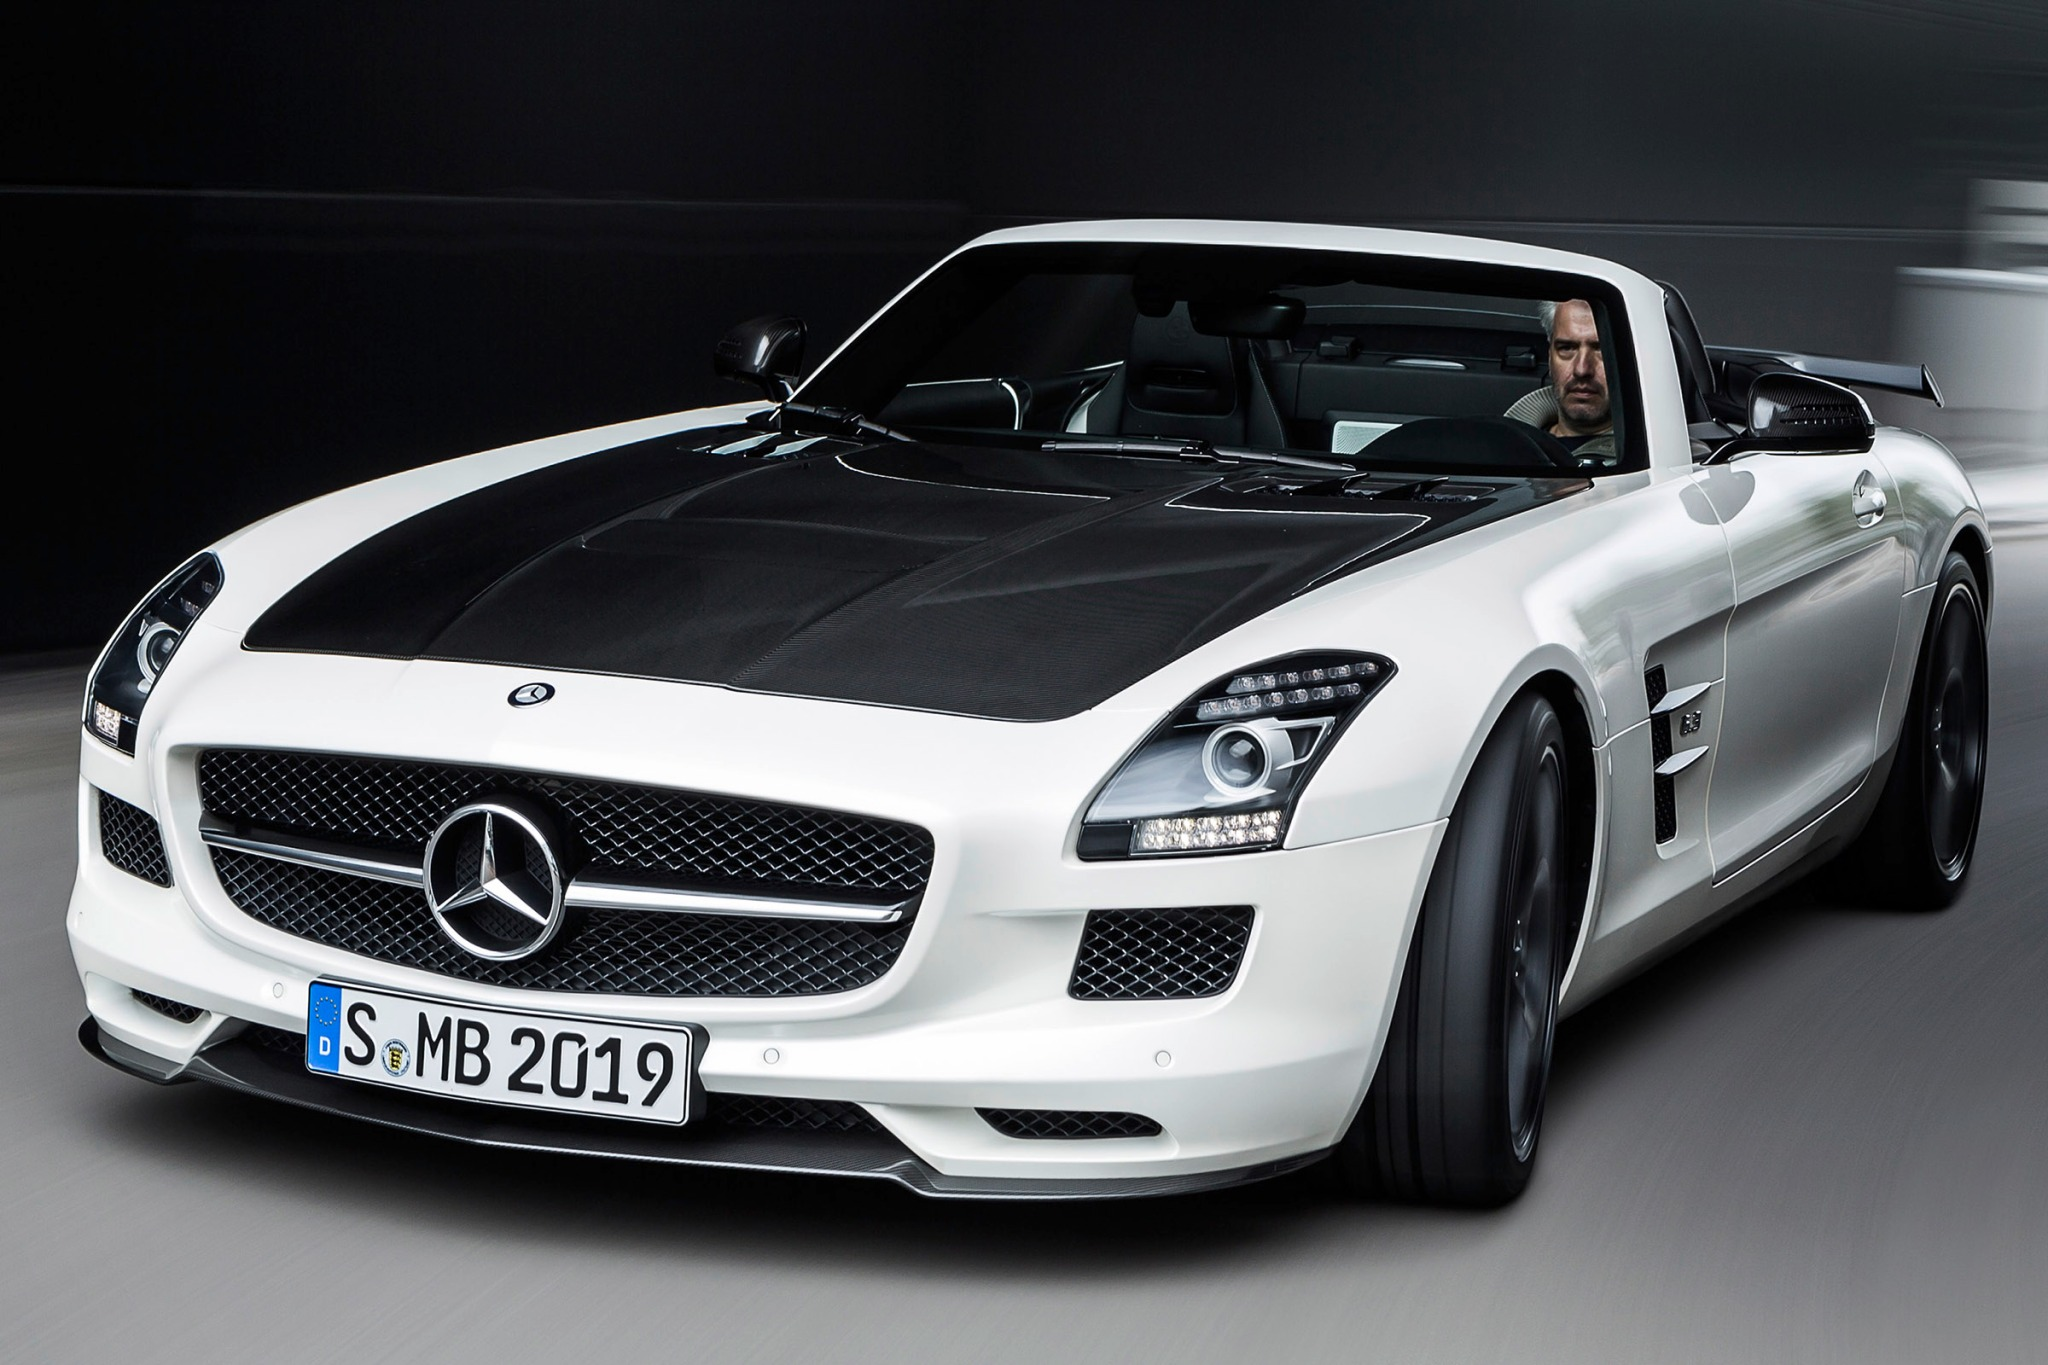 2015 mercedes benz sls amg gt final edition image 3 for 2015 mercedes benz sls amg